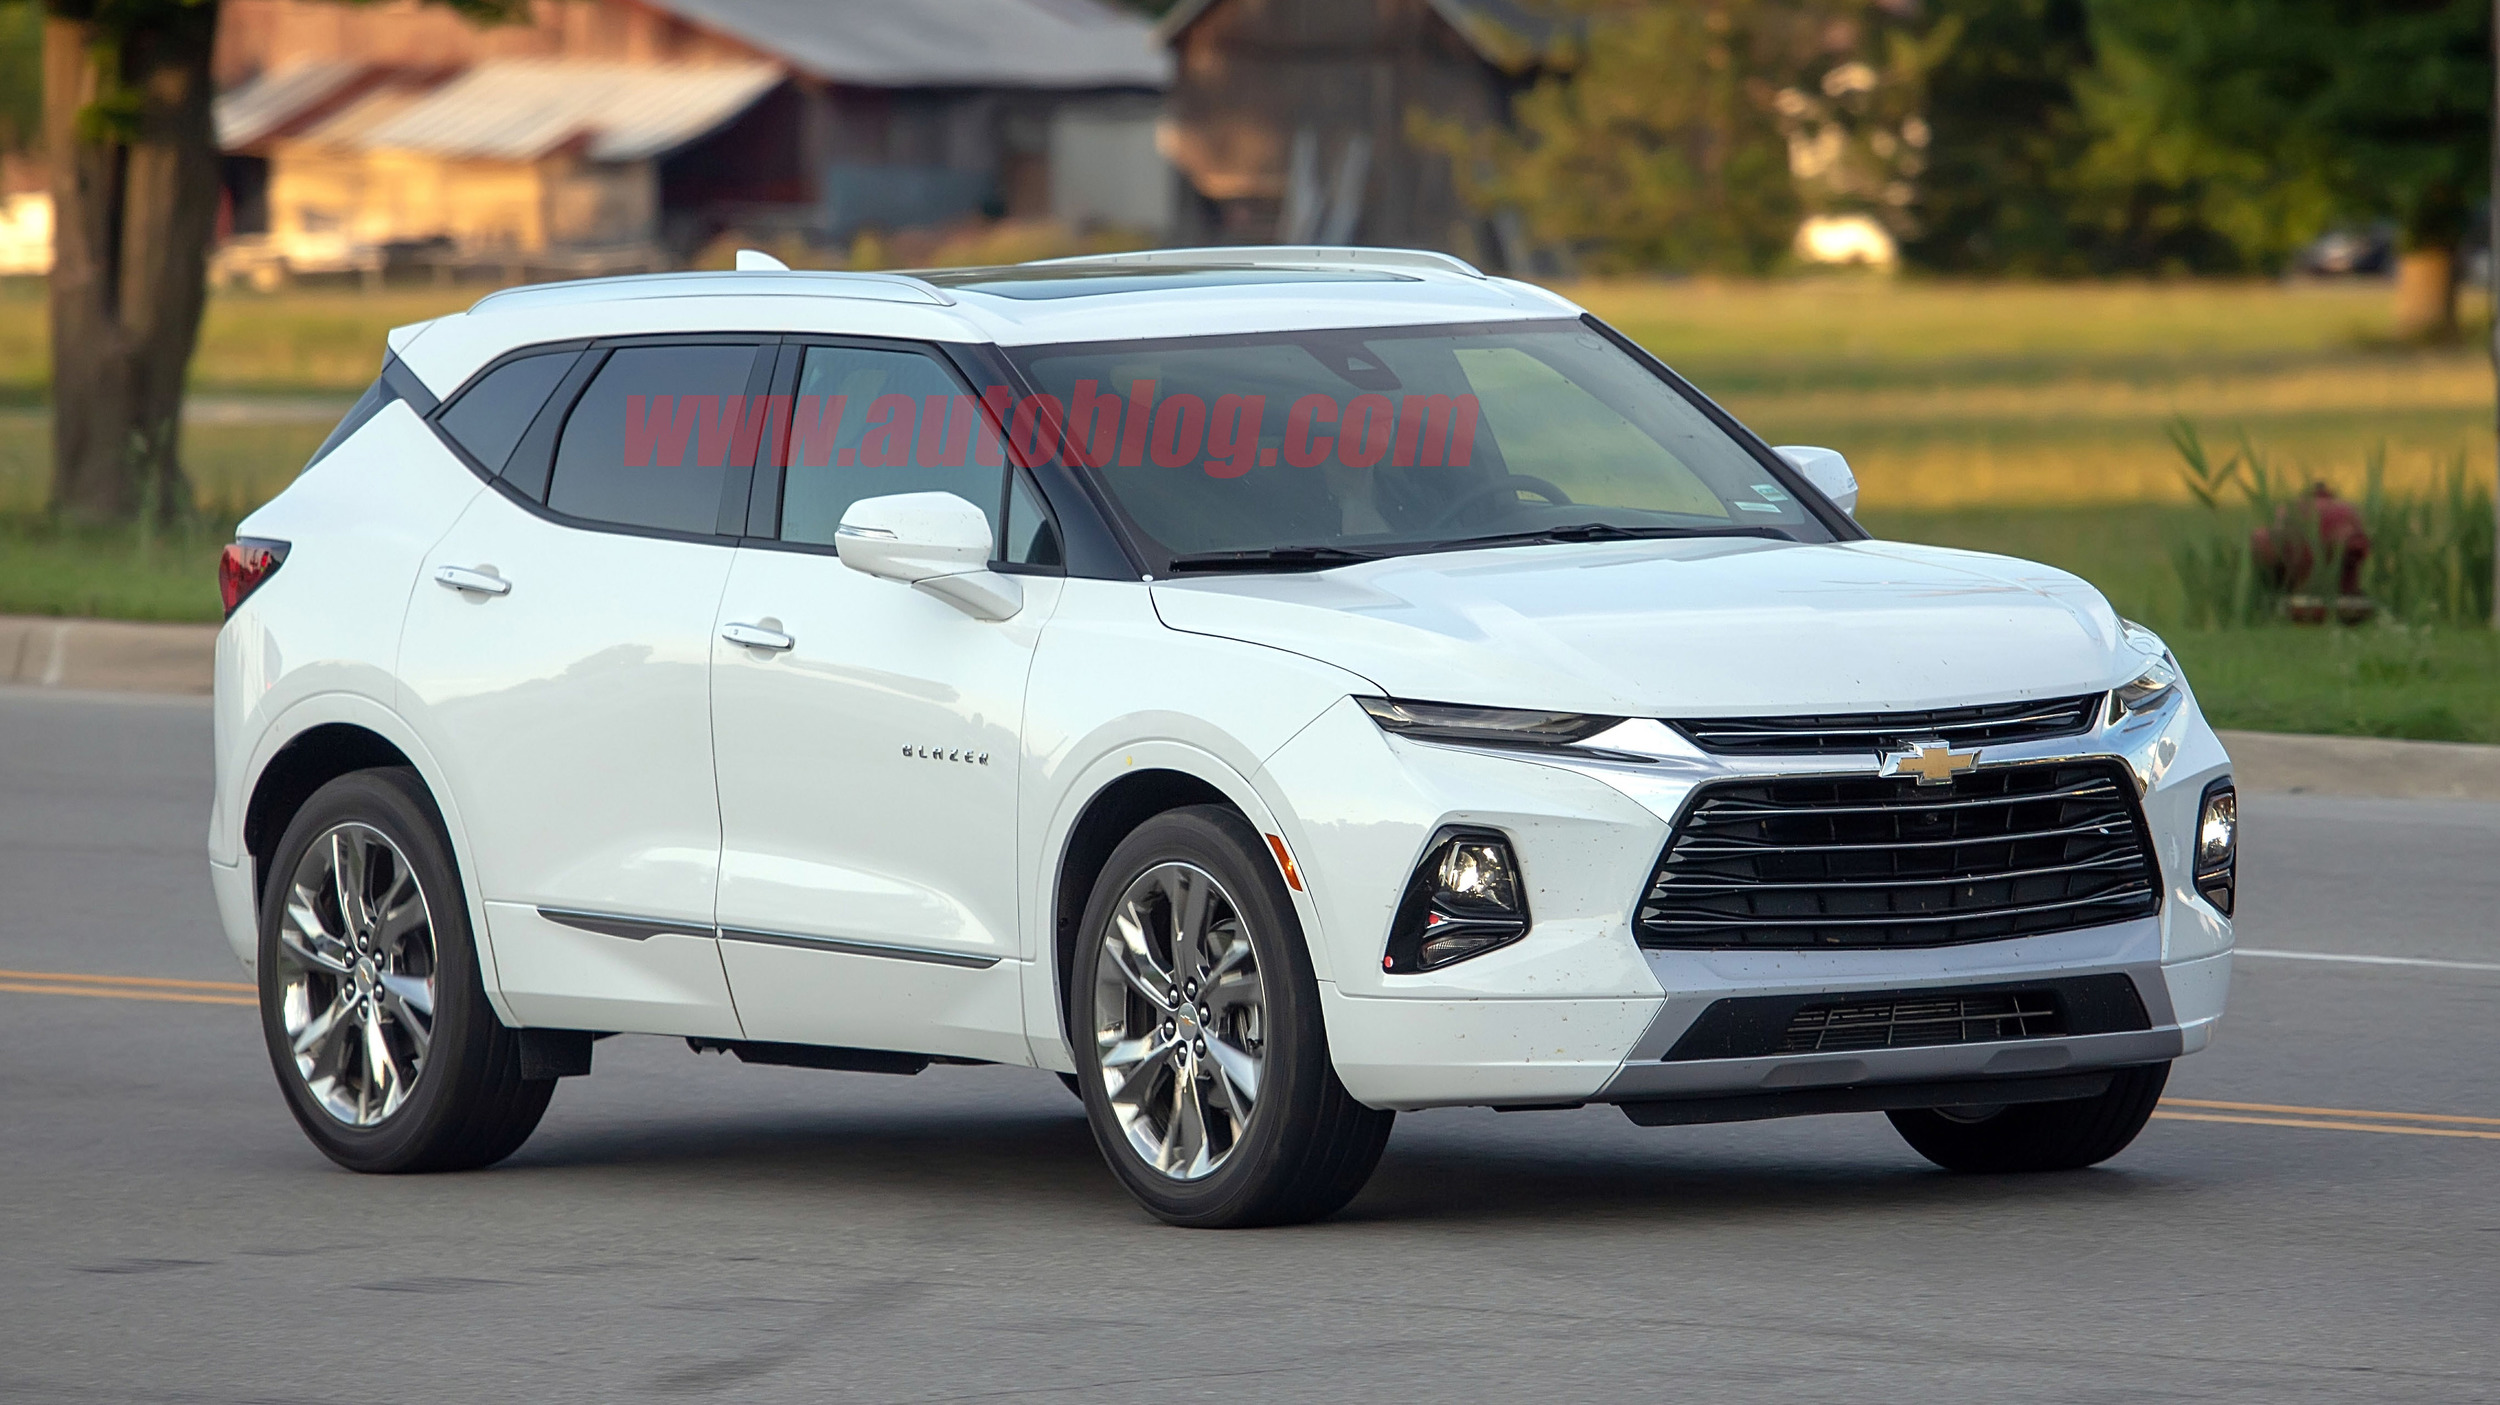 2019 Chevy Blazer spied for the first time uncovered on ...